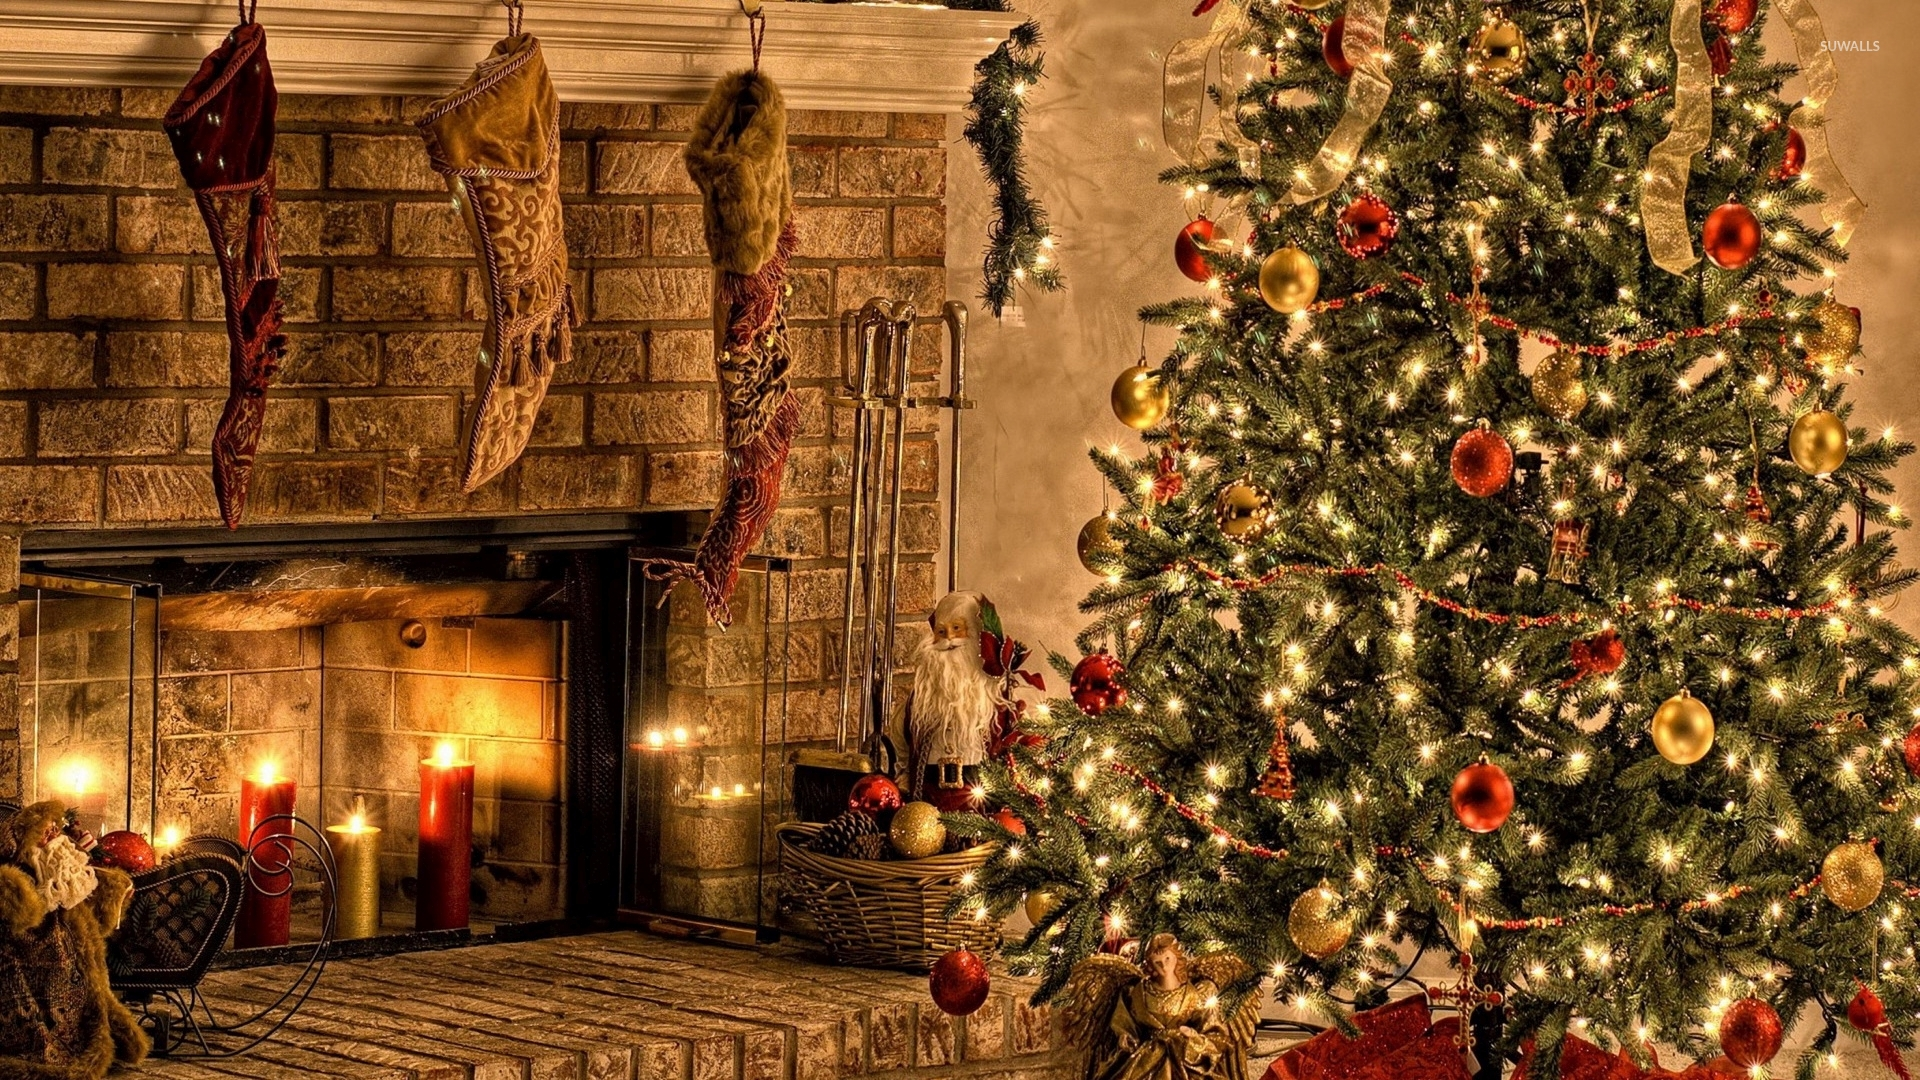 Christmas Fireplace Backgrounds Free , HD Wallpaper & Backgrounds